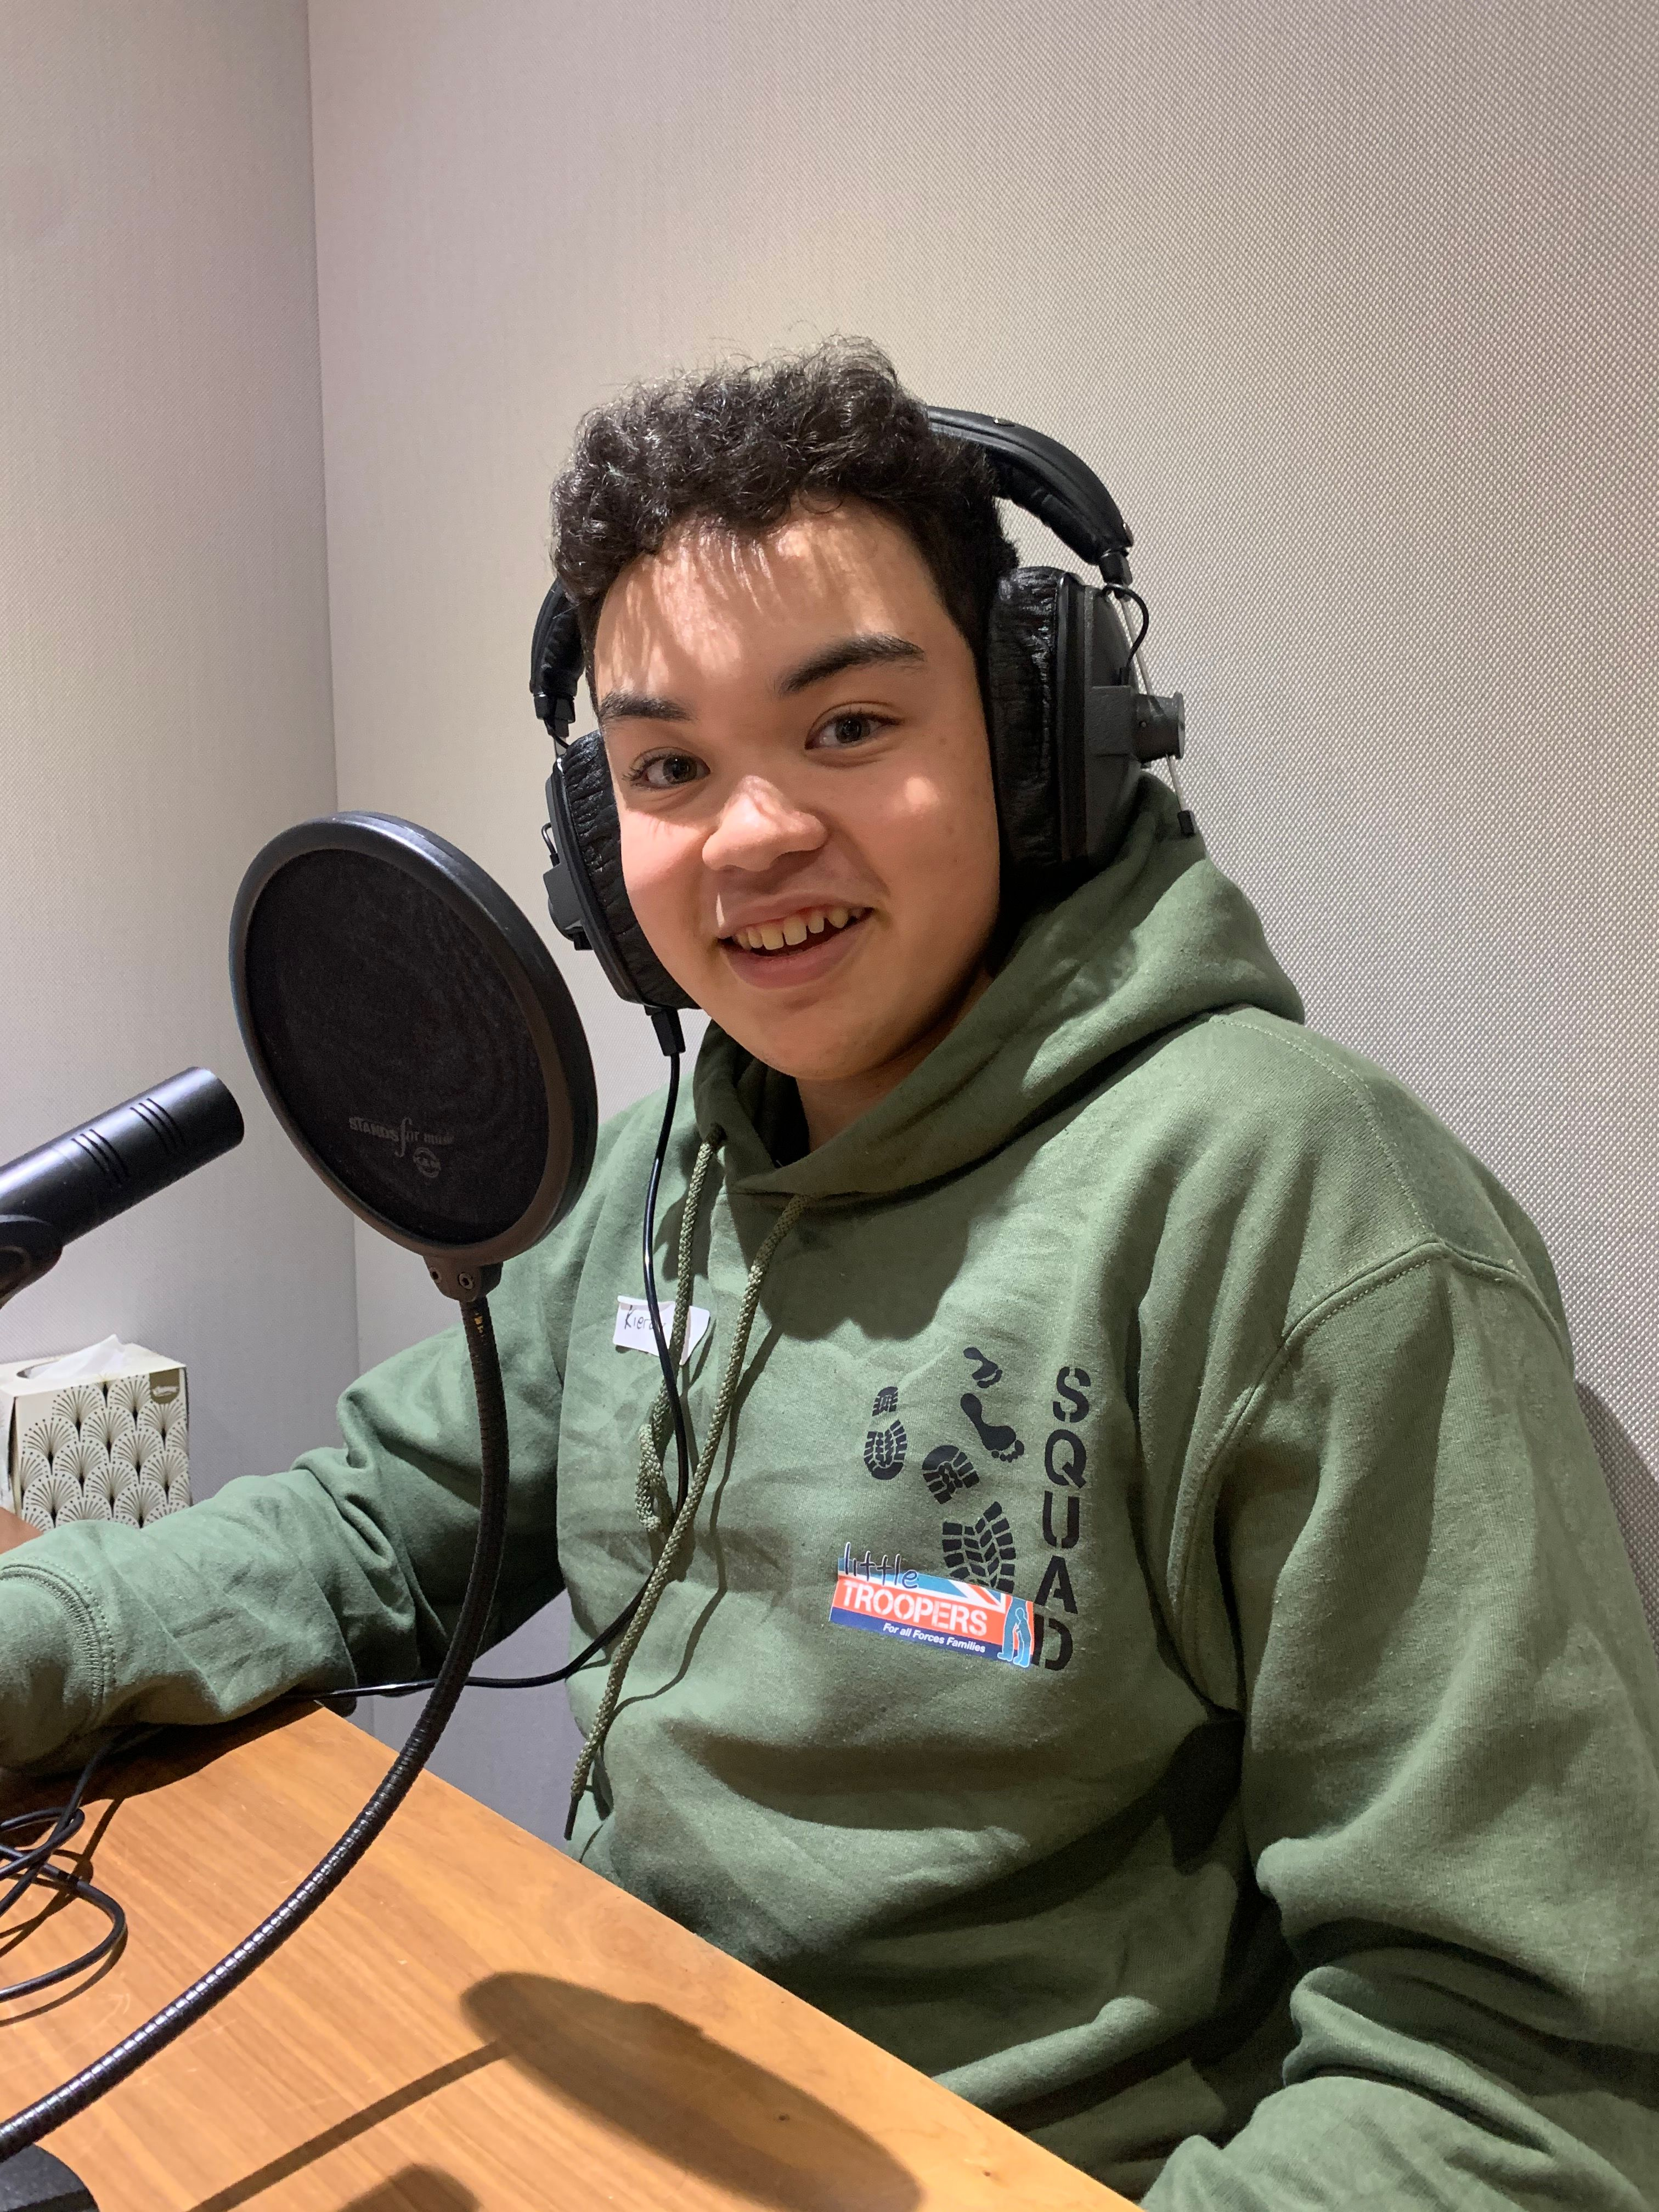 Kieran - a guest on the Little Troopers SQUAD podcast